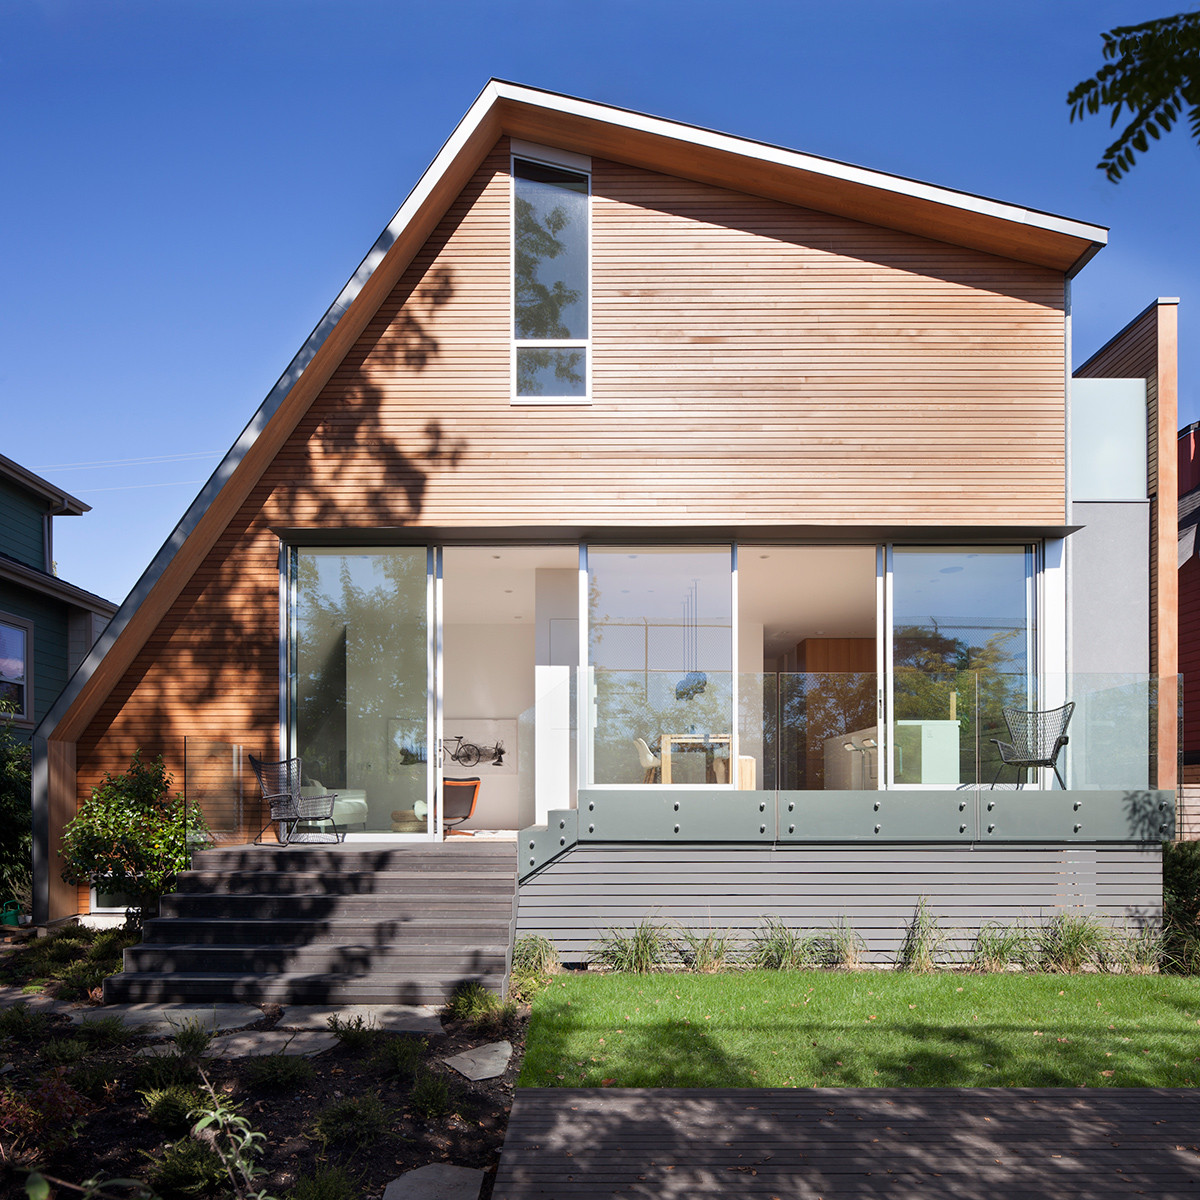 Casa en East Van / Splyce Design, © Ivan Hunter